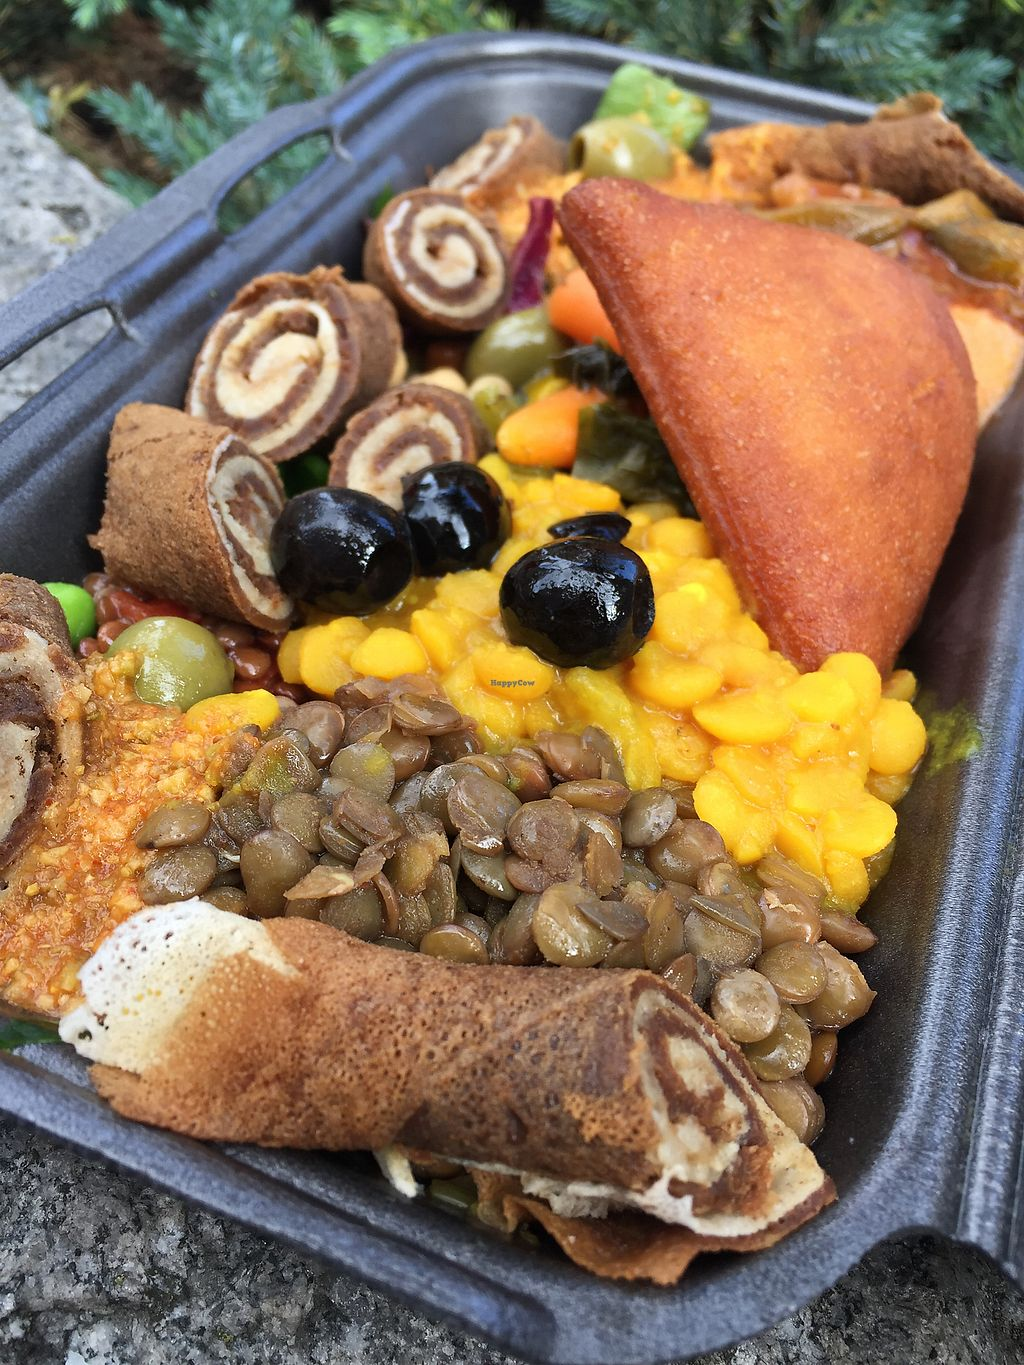 """Photo of Merkamo Ethiopian - Market Stall  by <a href=""""/members/profile/Bea_lc"""">Bea_lc</a> <br/>the yummy injera traditional plate <br/> September 9, 2017  - <a href='/contact/abuse/image/84882/302683'>Report</a>"""